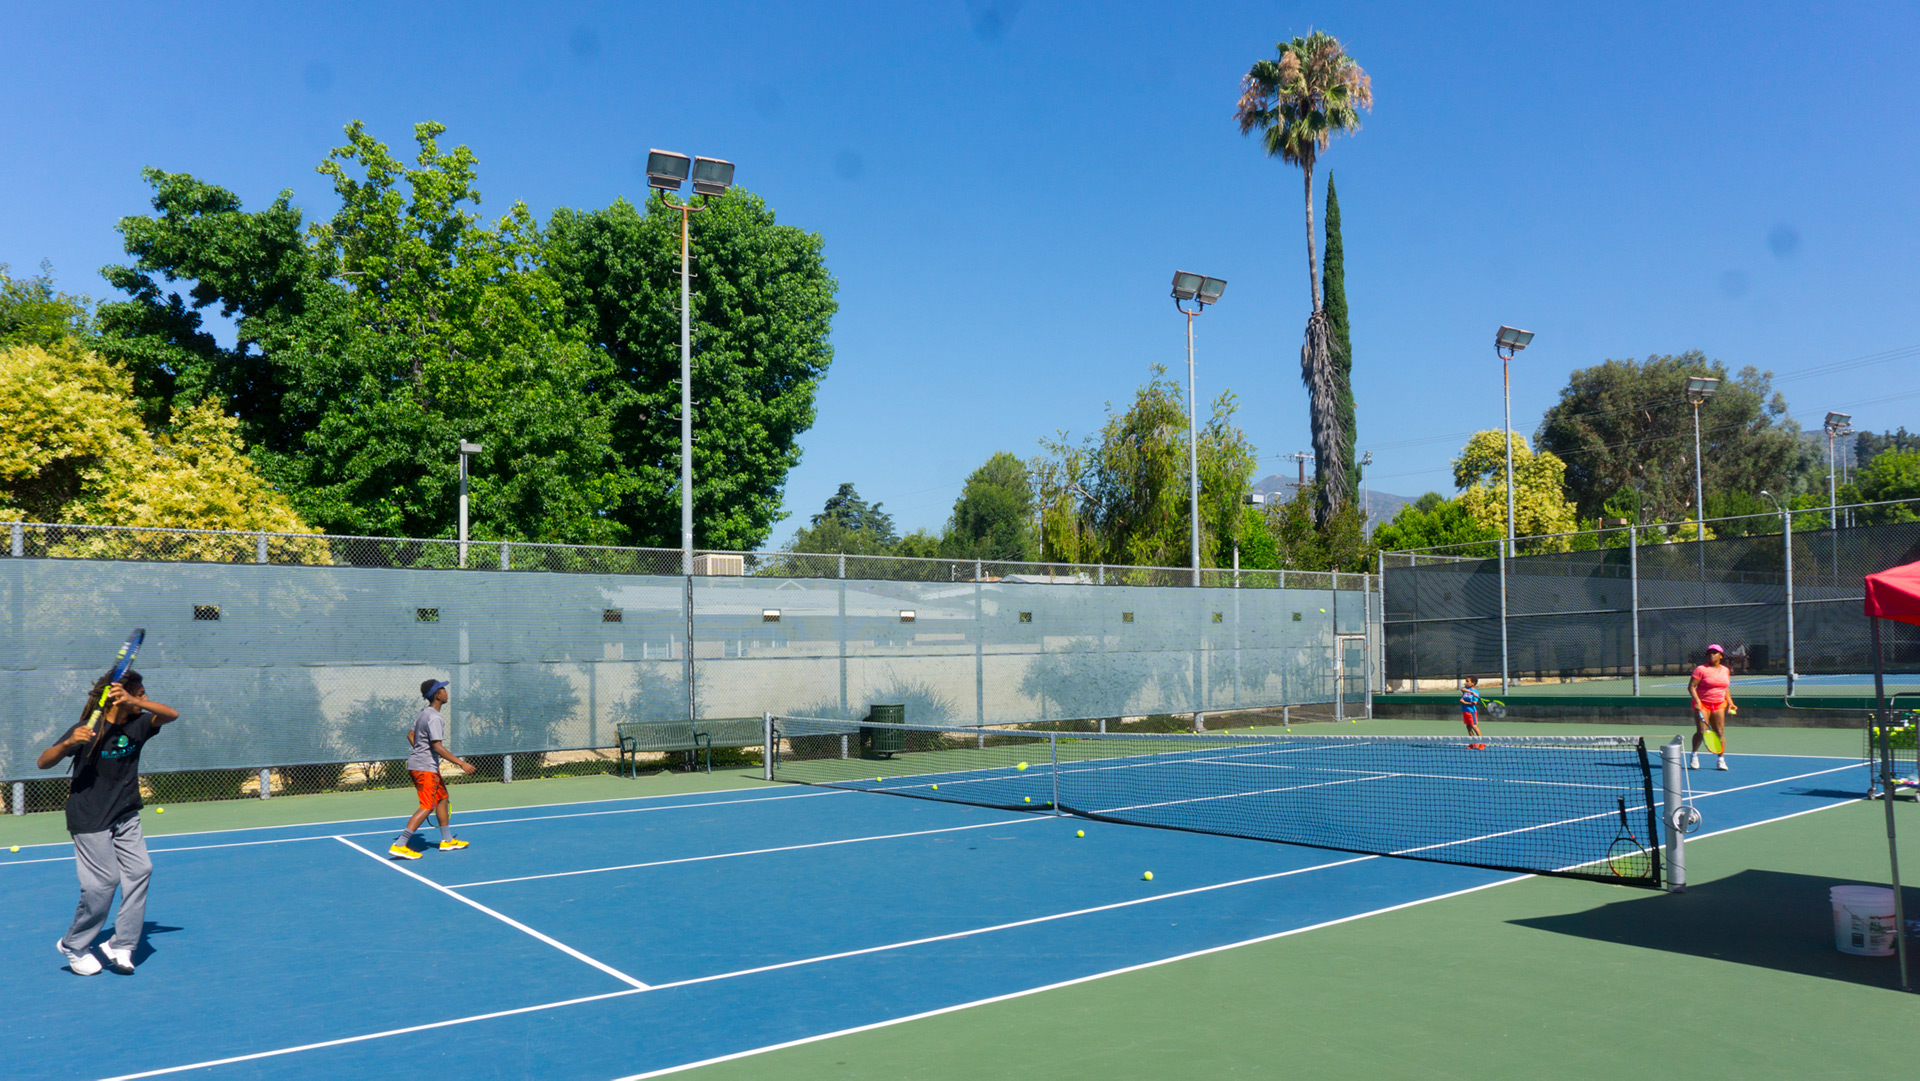 Wide shot Loma Alta Park tennis court with players